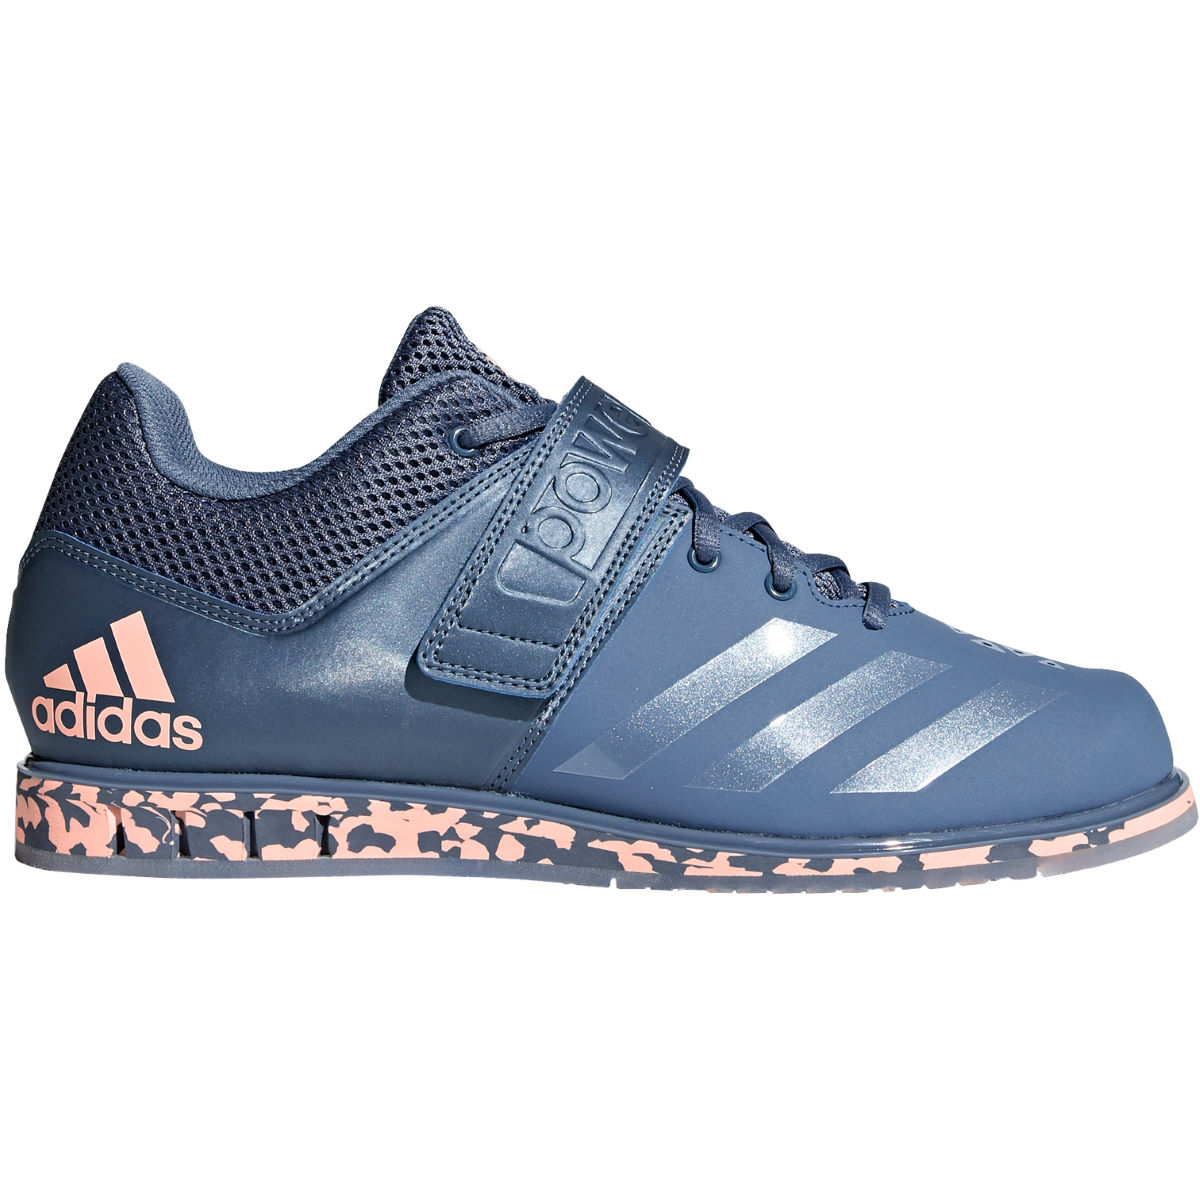 adidas Women's Powerlift 3.1 Shoes - Zapatillas de entrenamiento con pesas